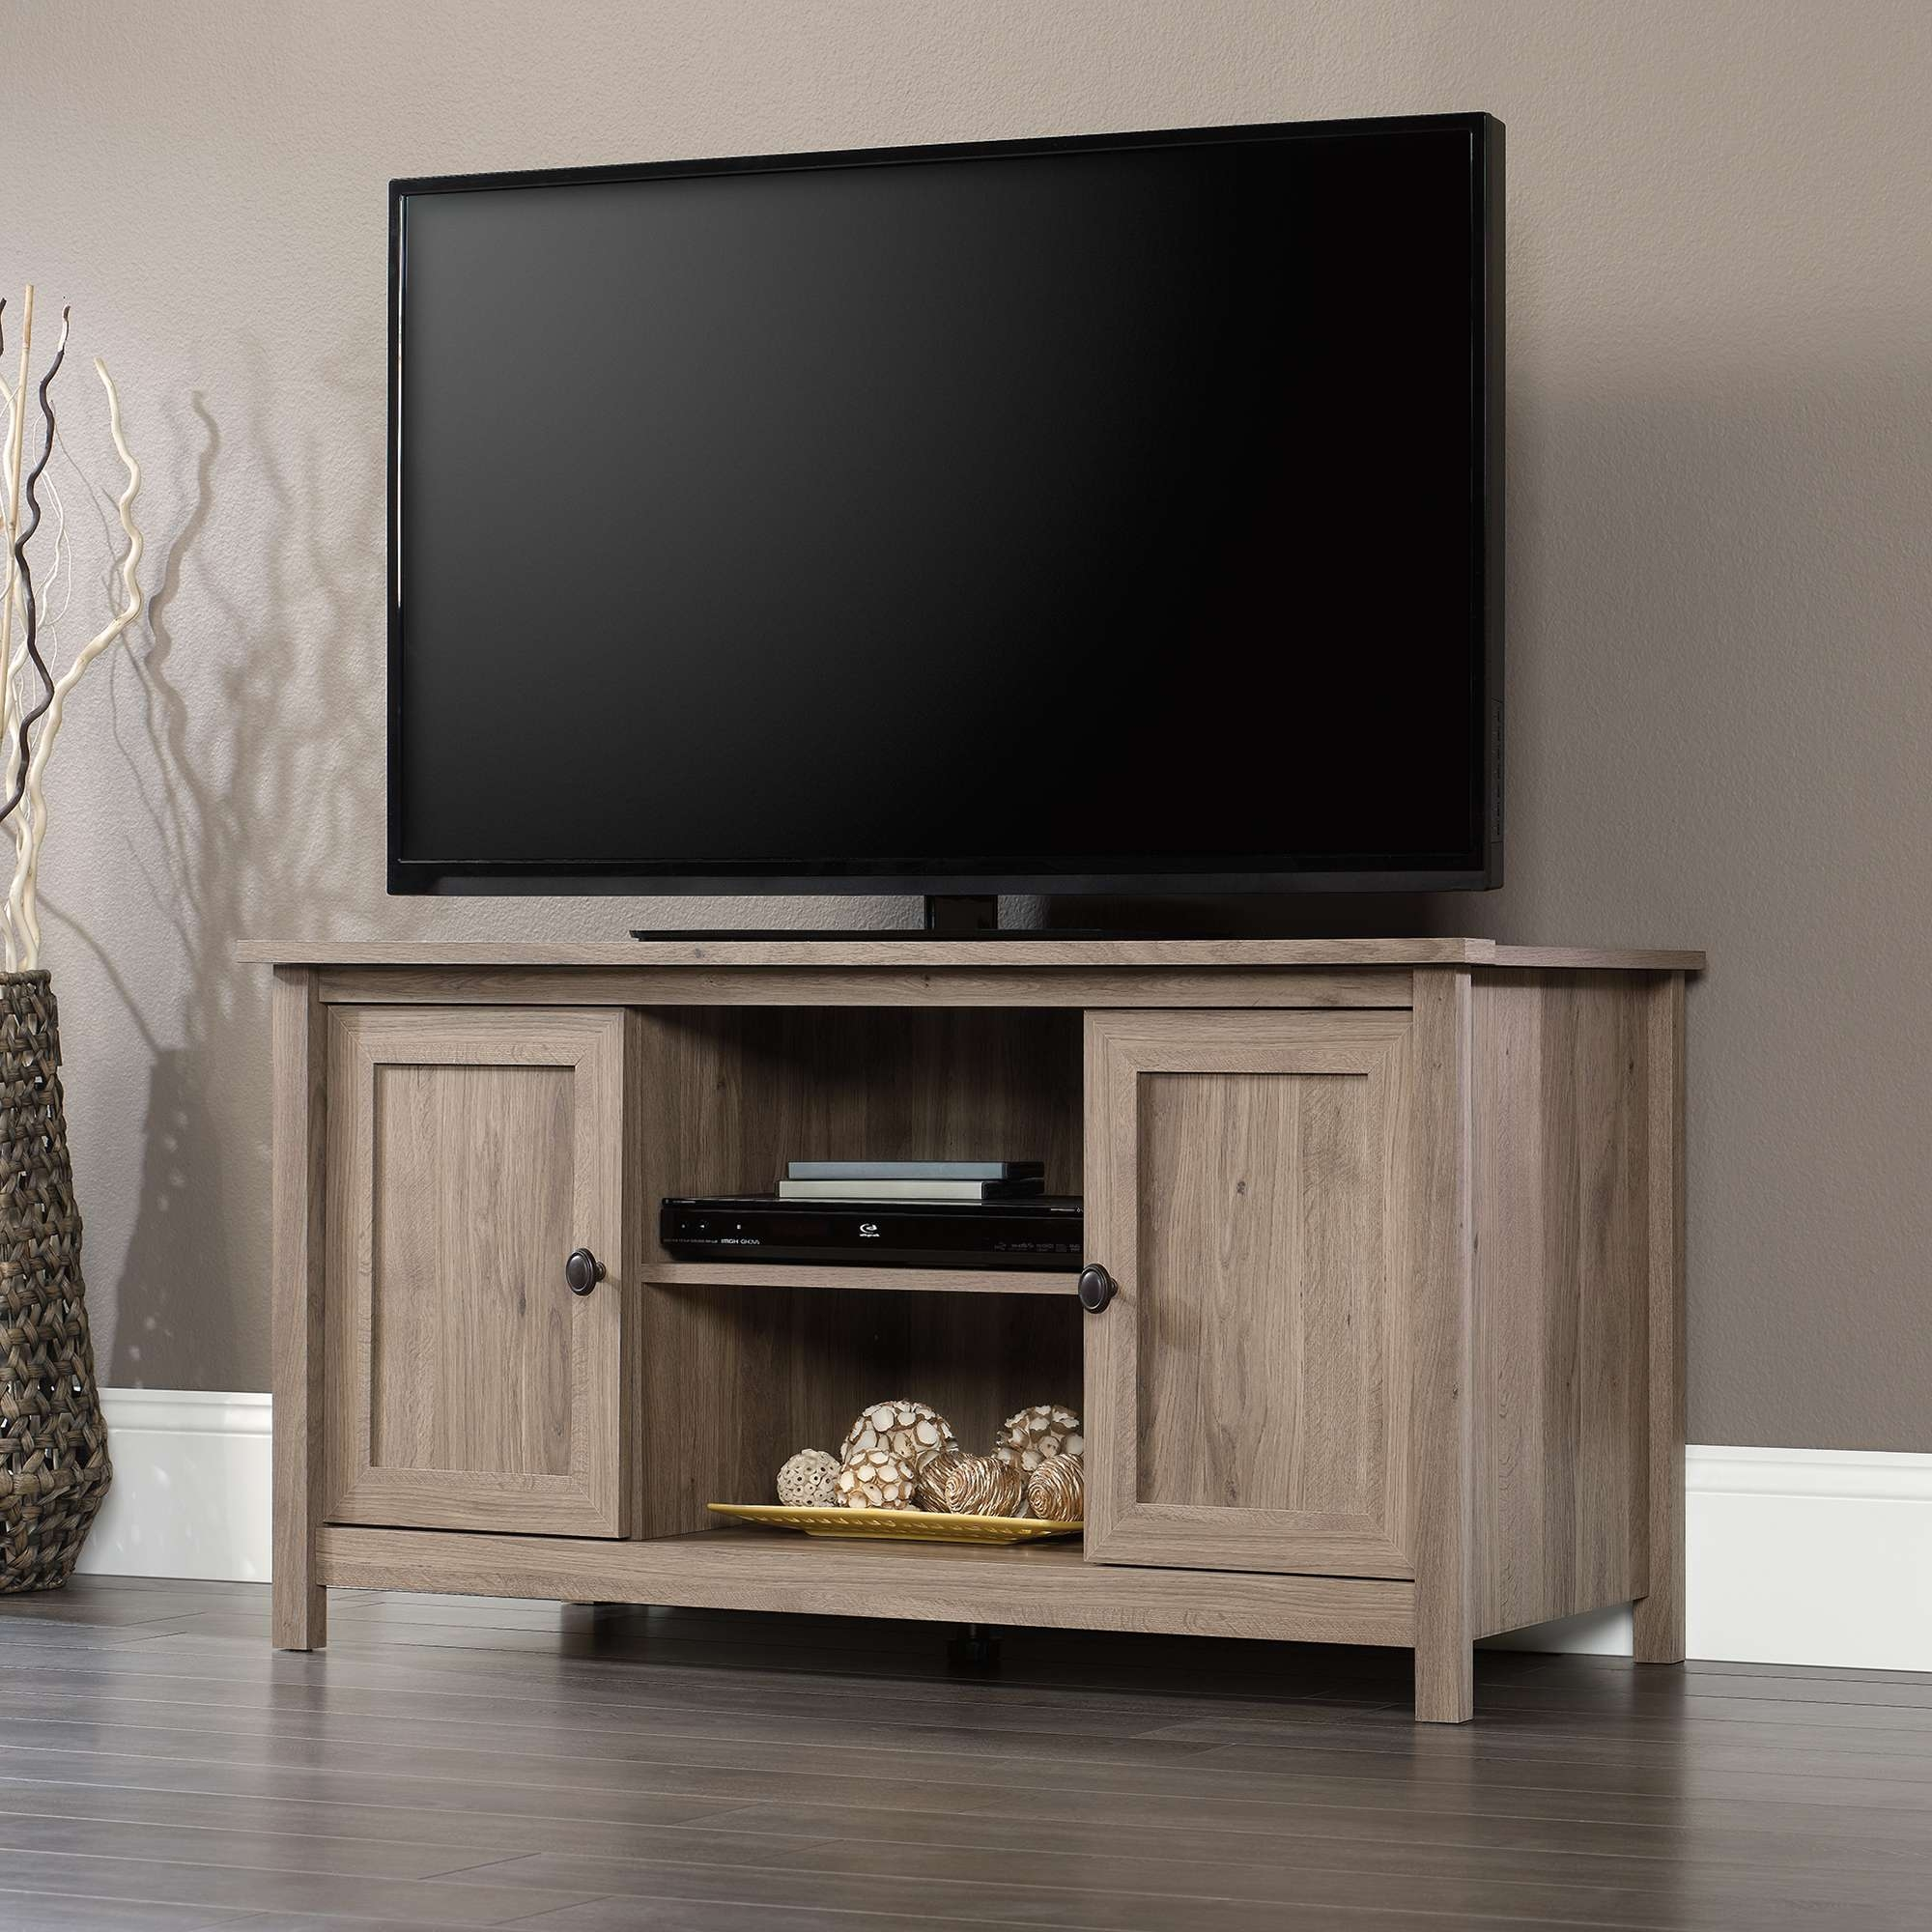 County Line | Tv Stand | 417772 | Sauder Intended For Oak Tv Stands Furniture (View 8 of 15)